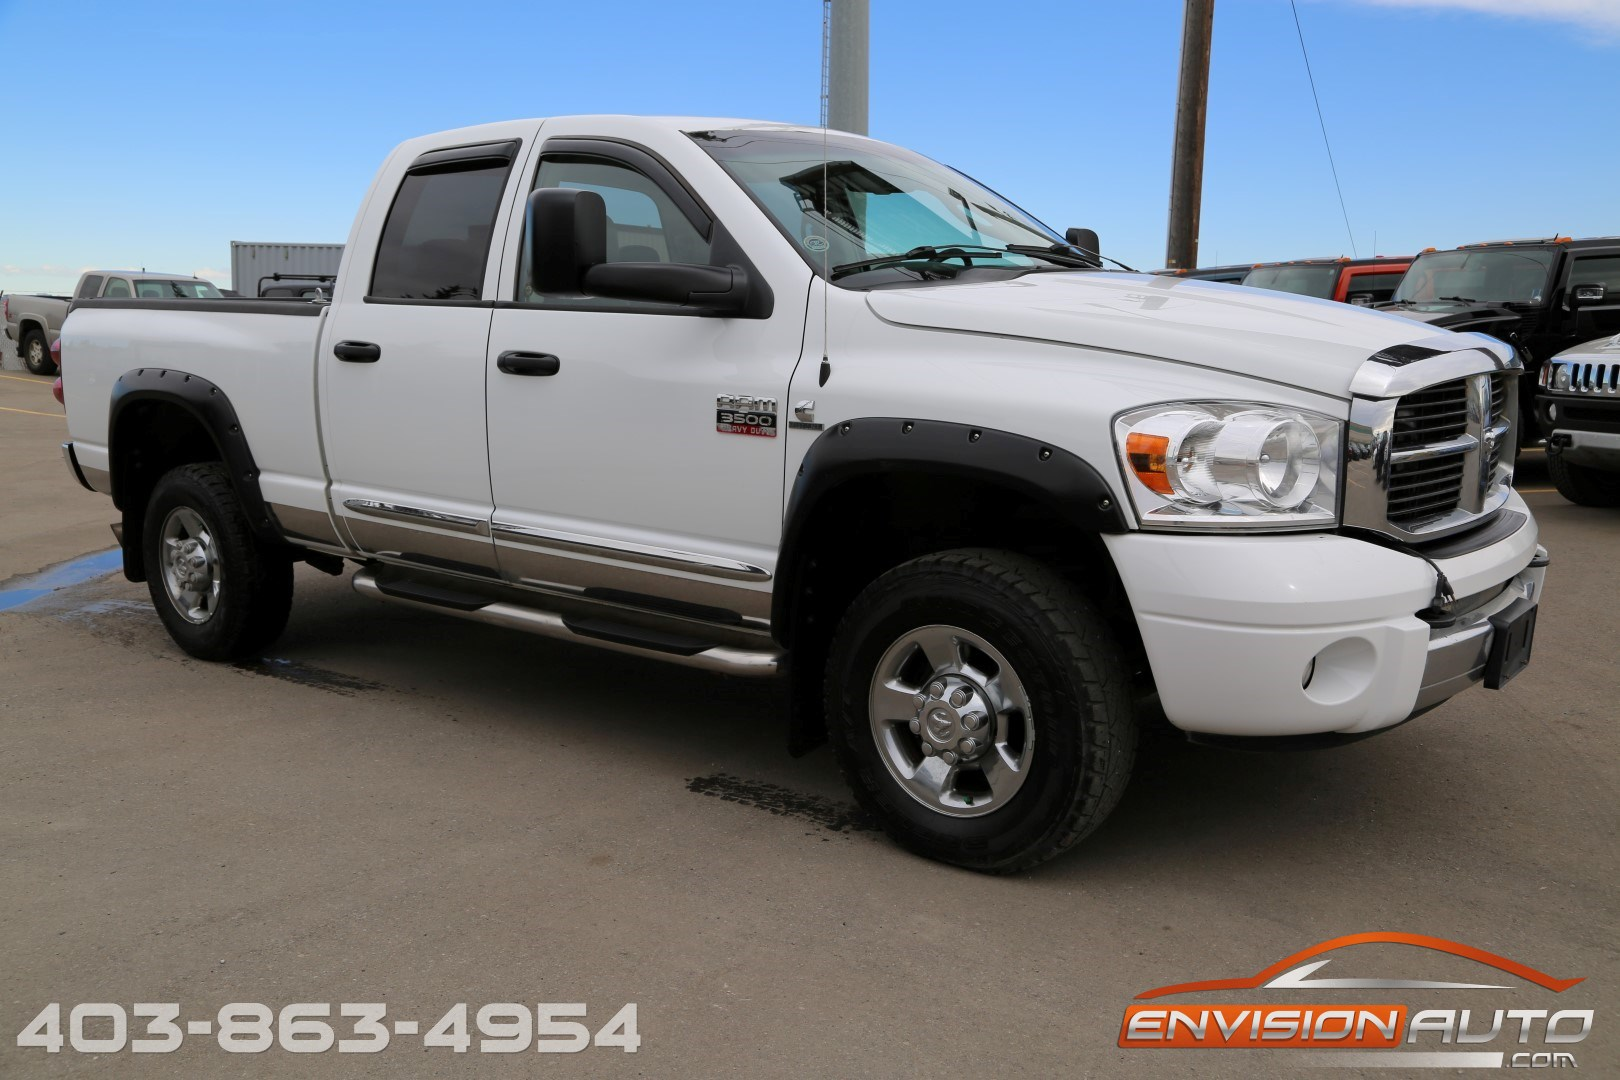 2007 dodge ram 3500hd laramie quad cab 4 4 5 9l cummins diesel envision auto calgary. Black Bedroom Furniture Sets. Home Design Ideas